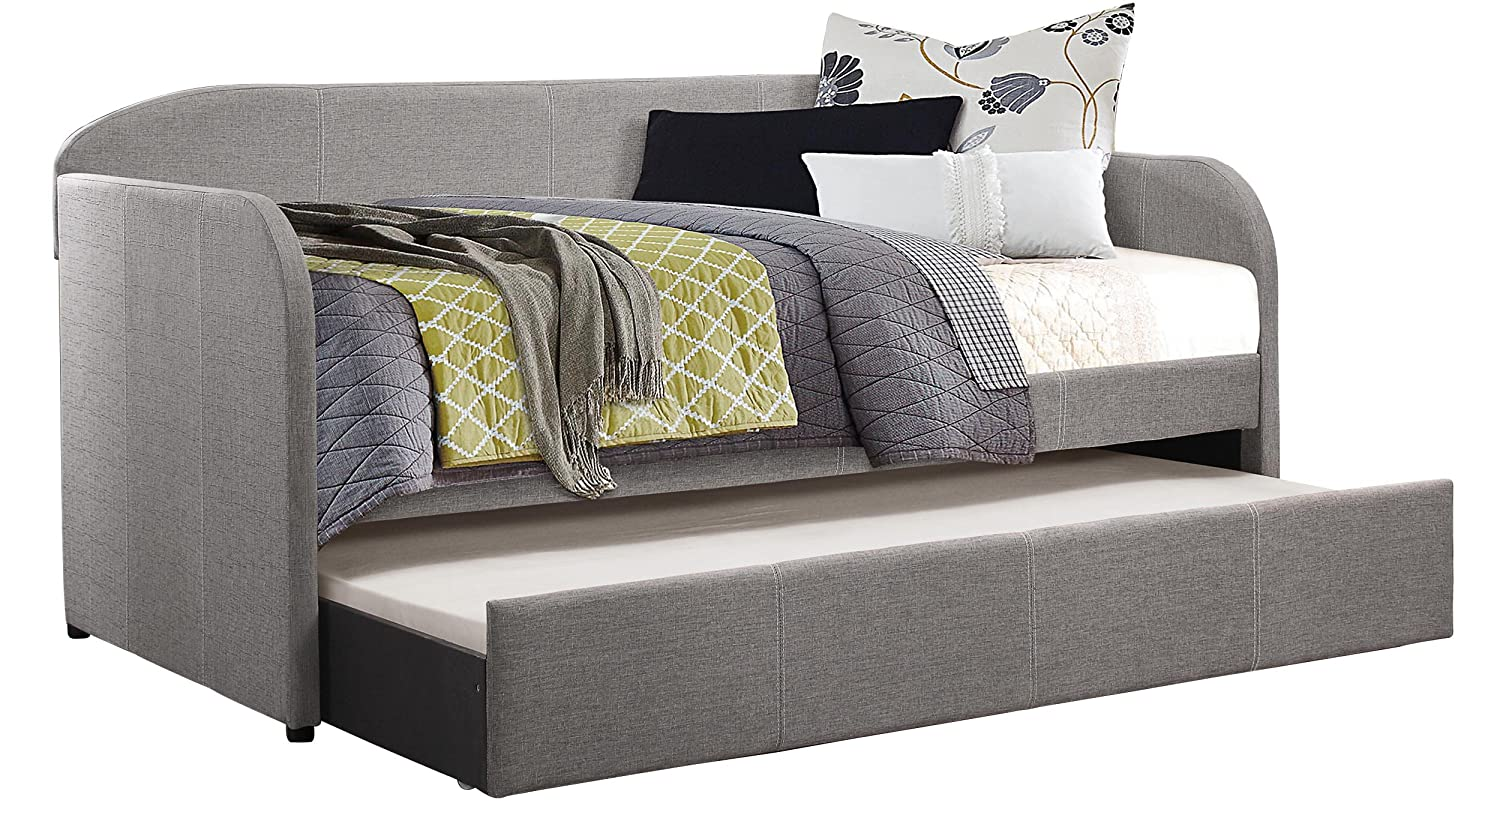 Amazon.com: Homelegance Modern Design Daybed With Trundle Fully Upholstered  Polyester, Twin, Grey: Kitchen U0026 Dining